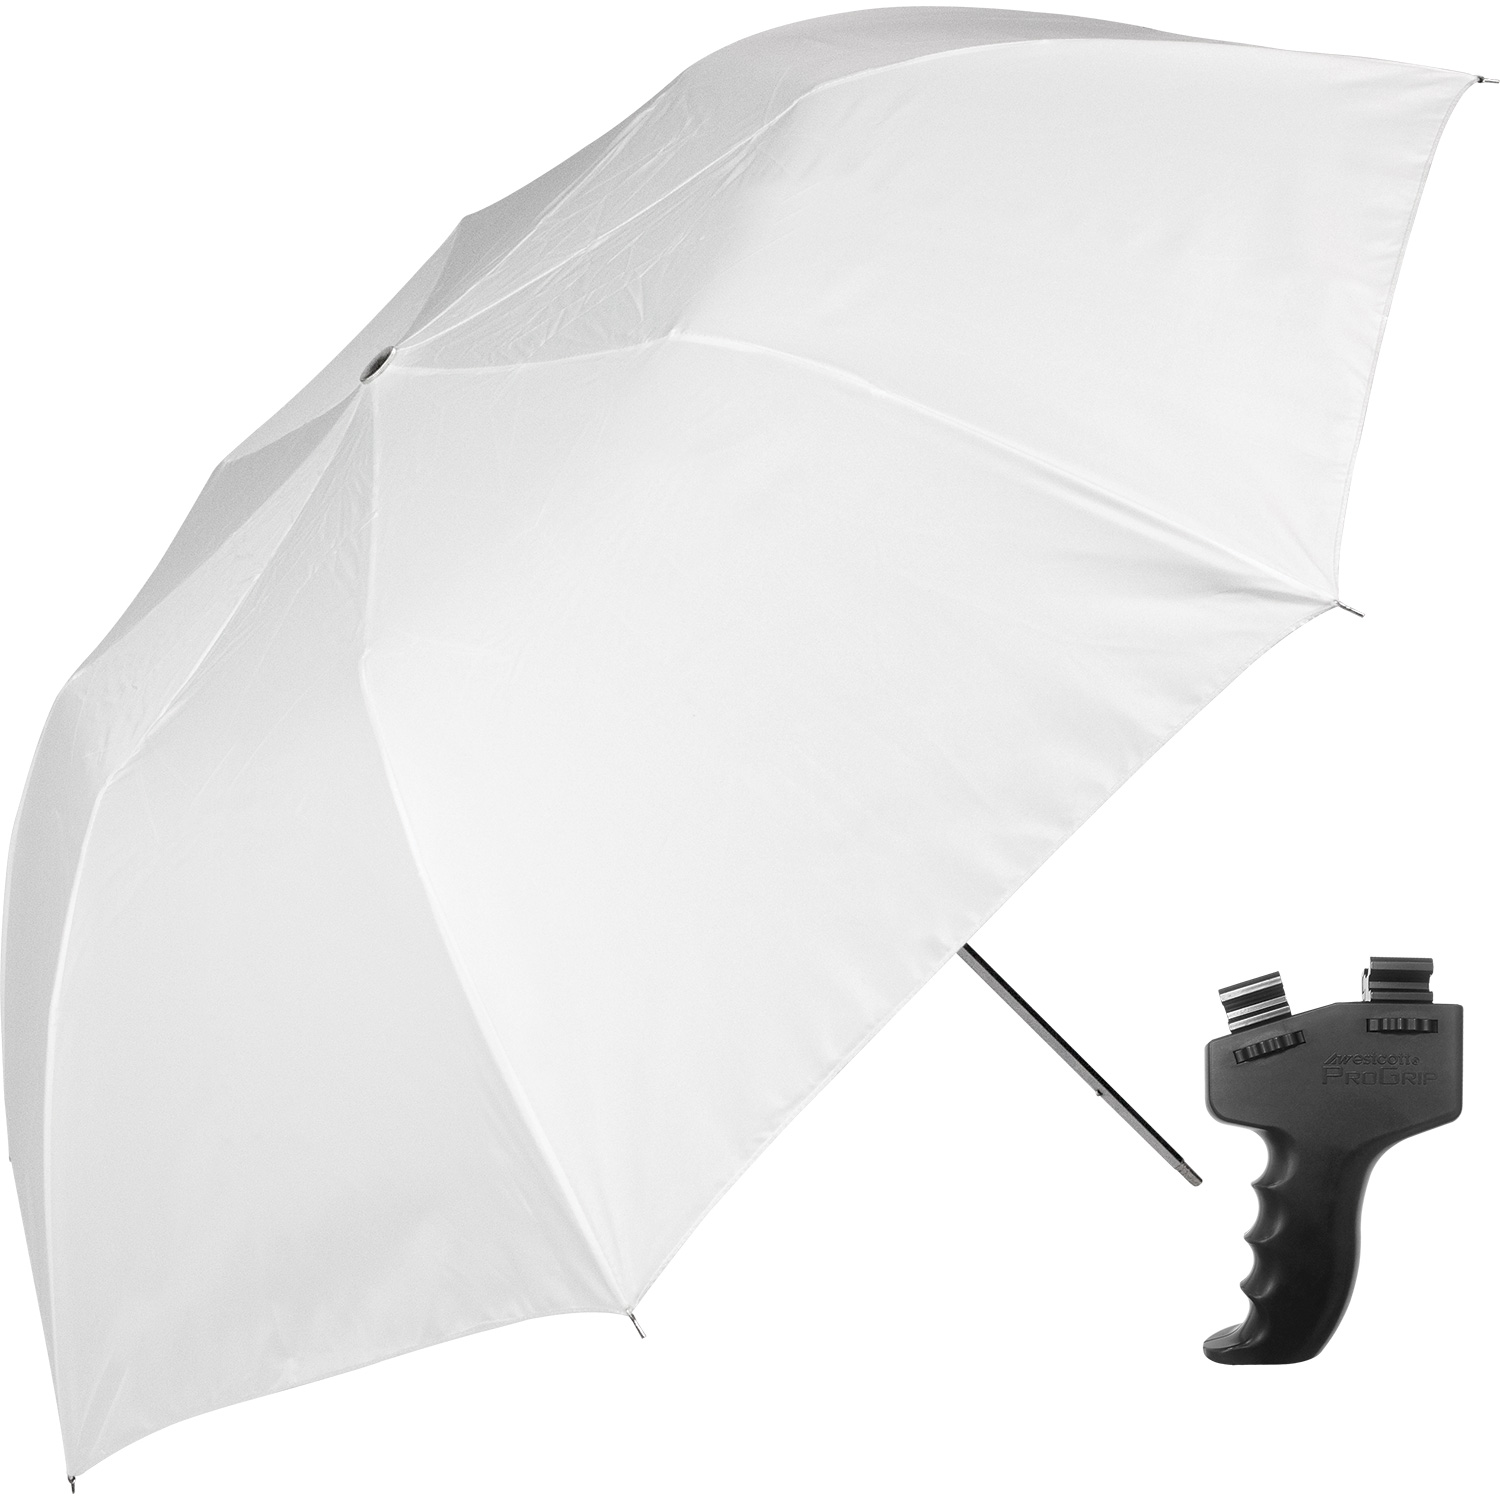 ProGrip Umbrella Speedlite Kit